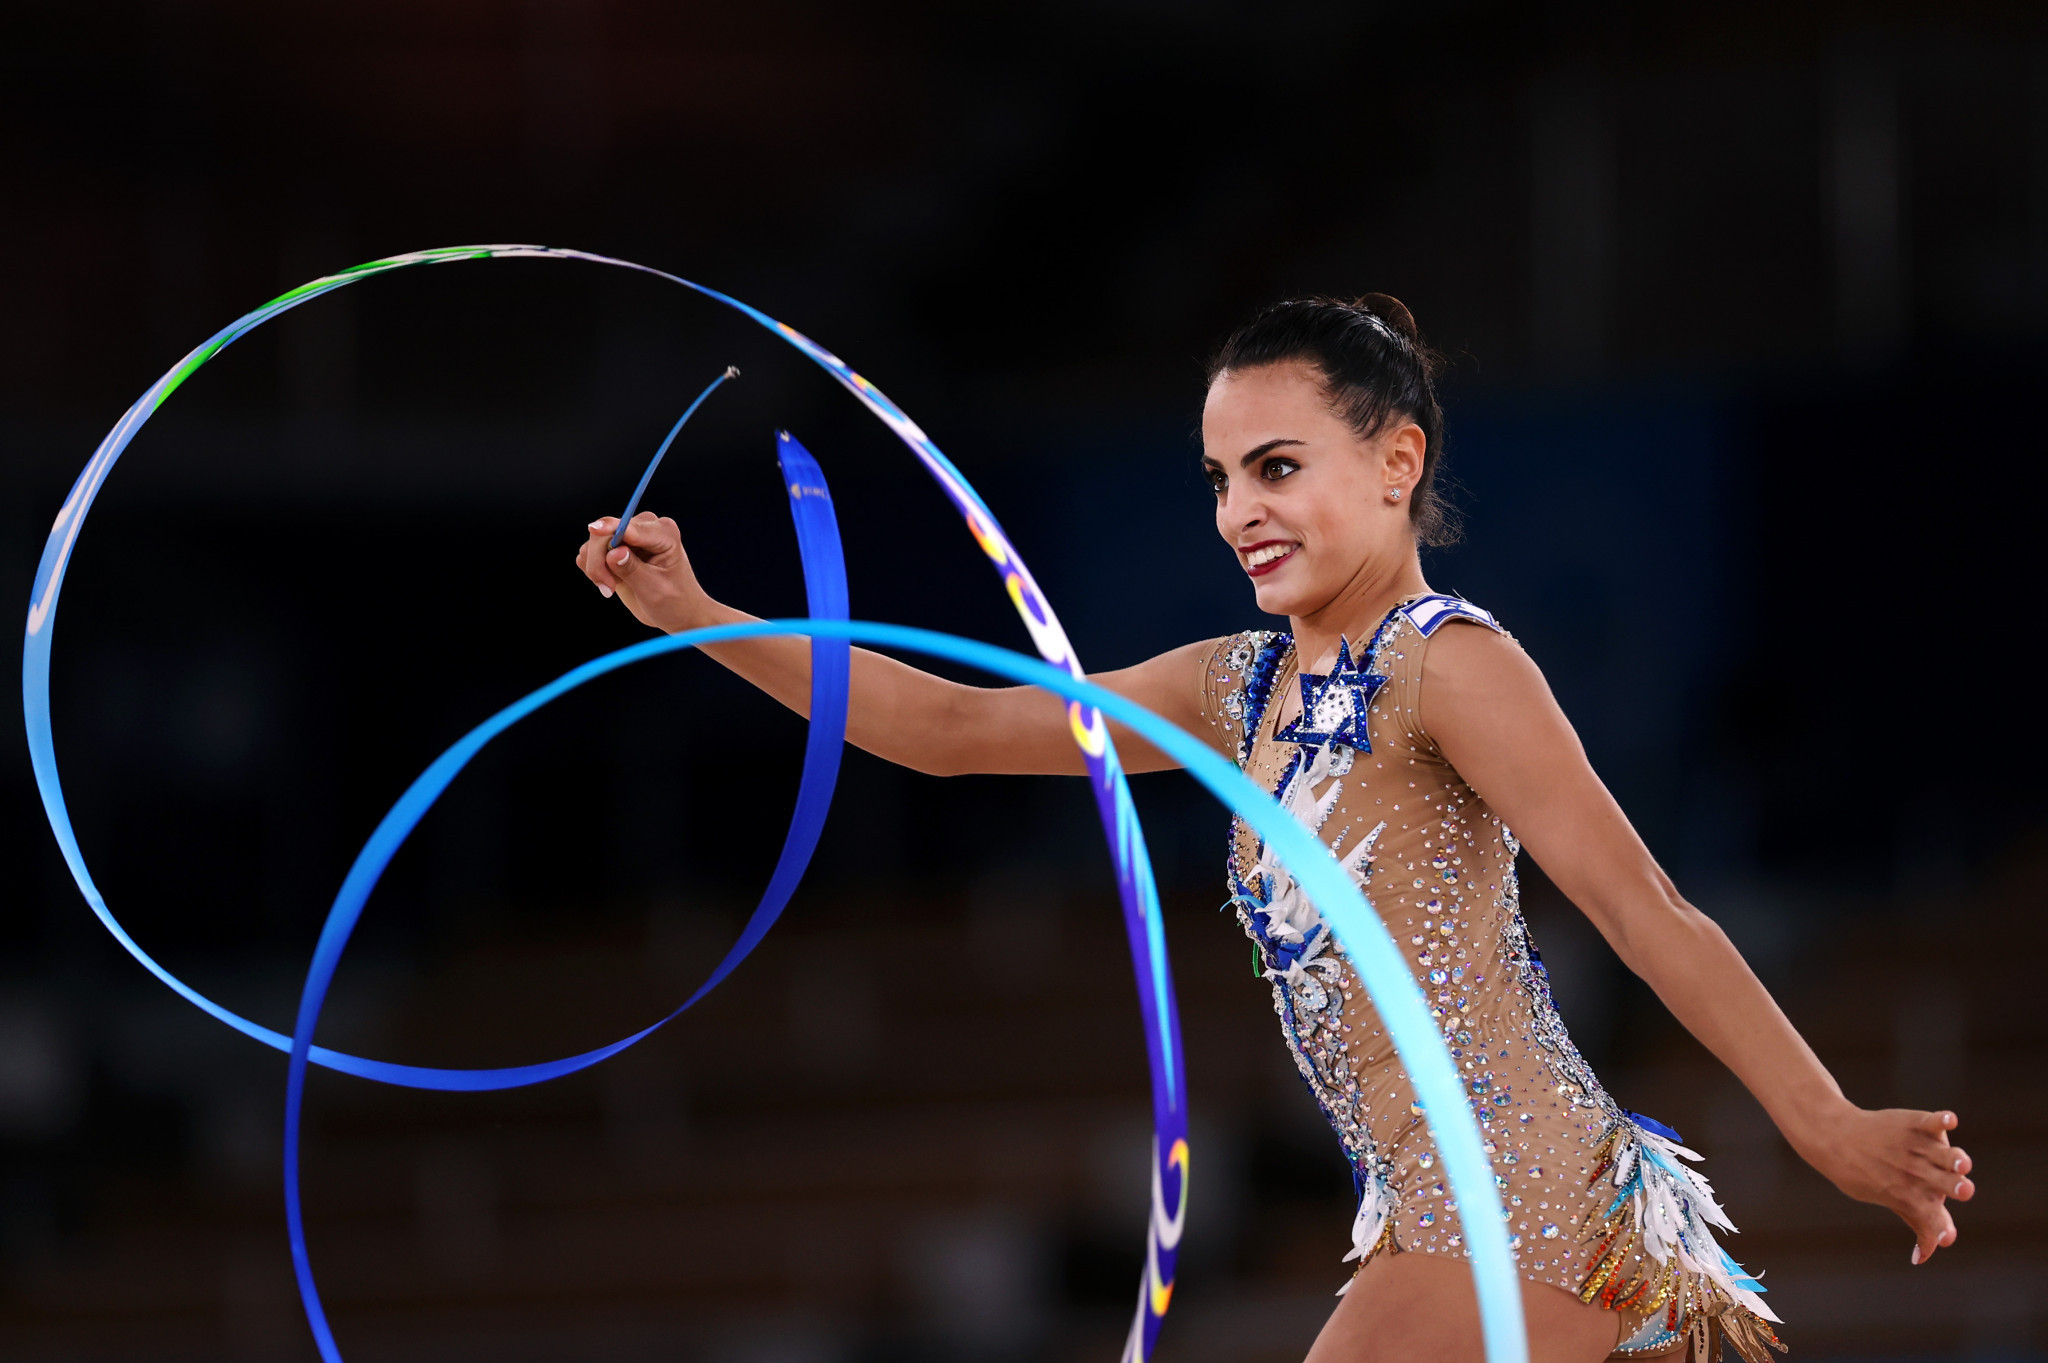 ROC officially complain about rhythmic gymnastics result as Foreign Ministry spokesperson wades into row